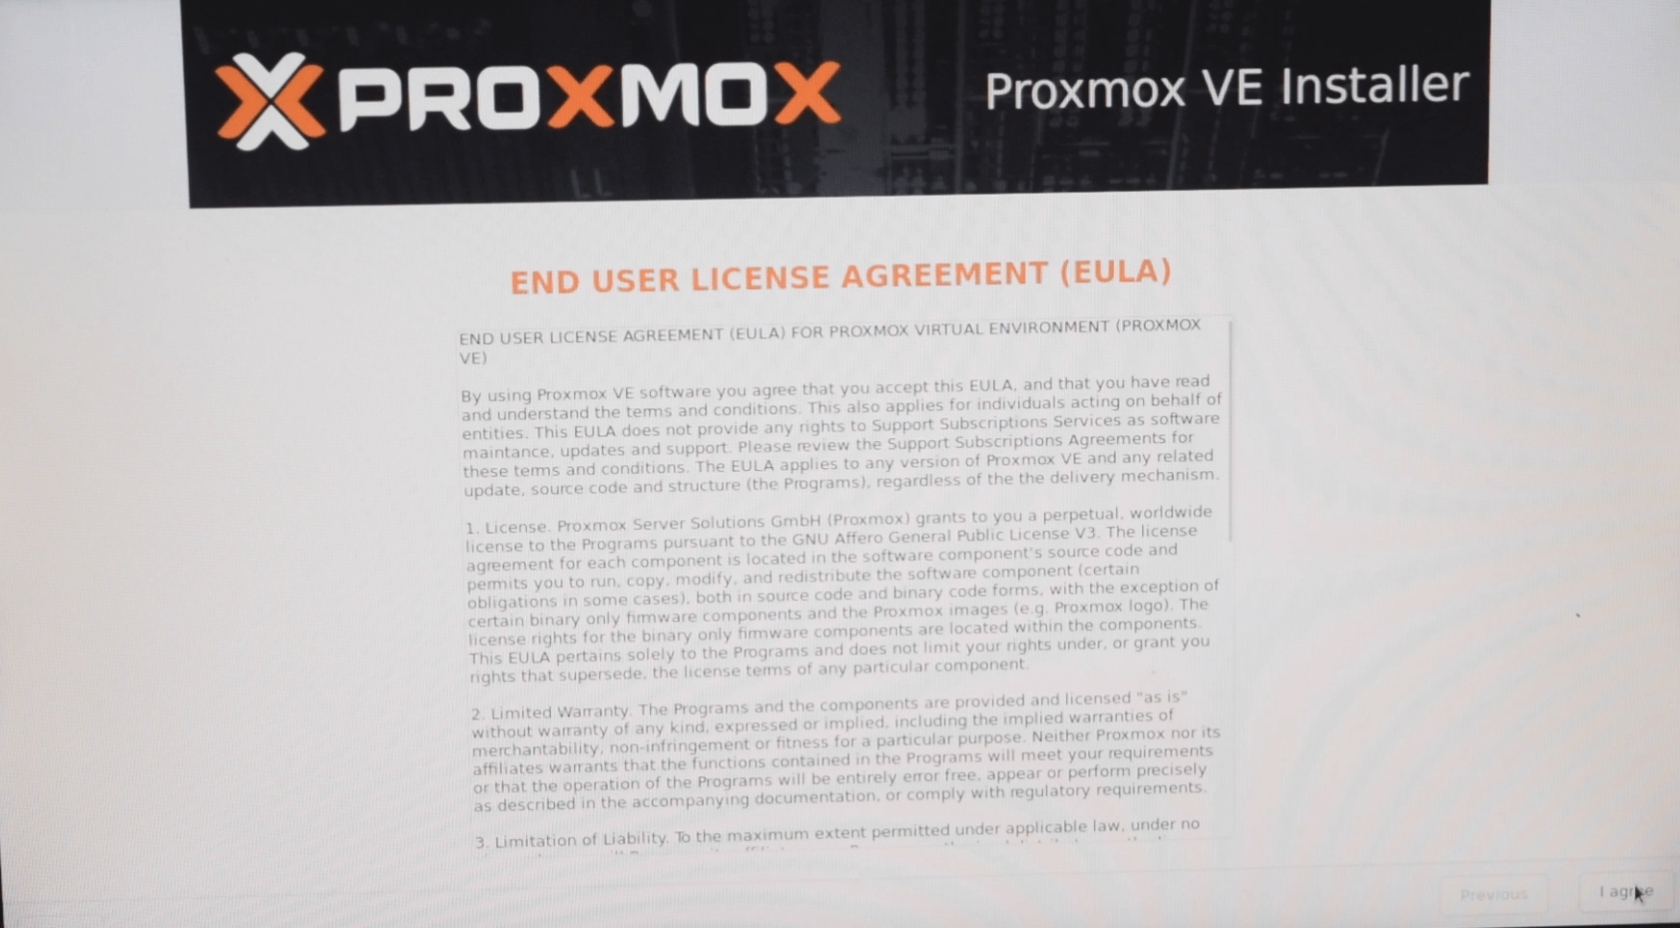 how to install proxmox, How to Install Proxmox and Configure its Updates